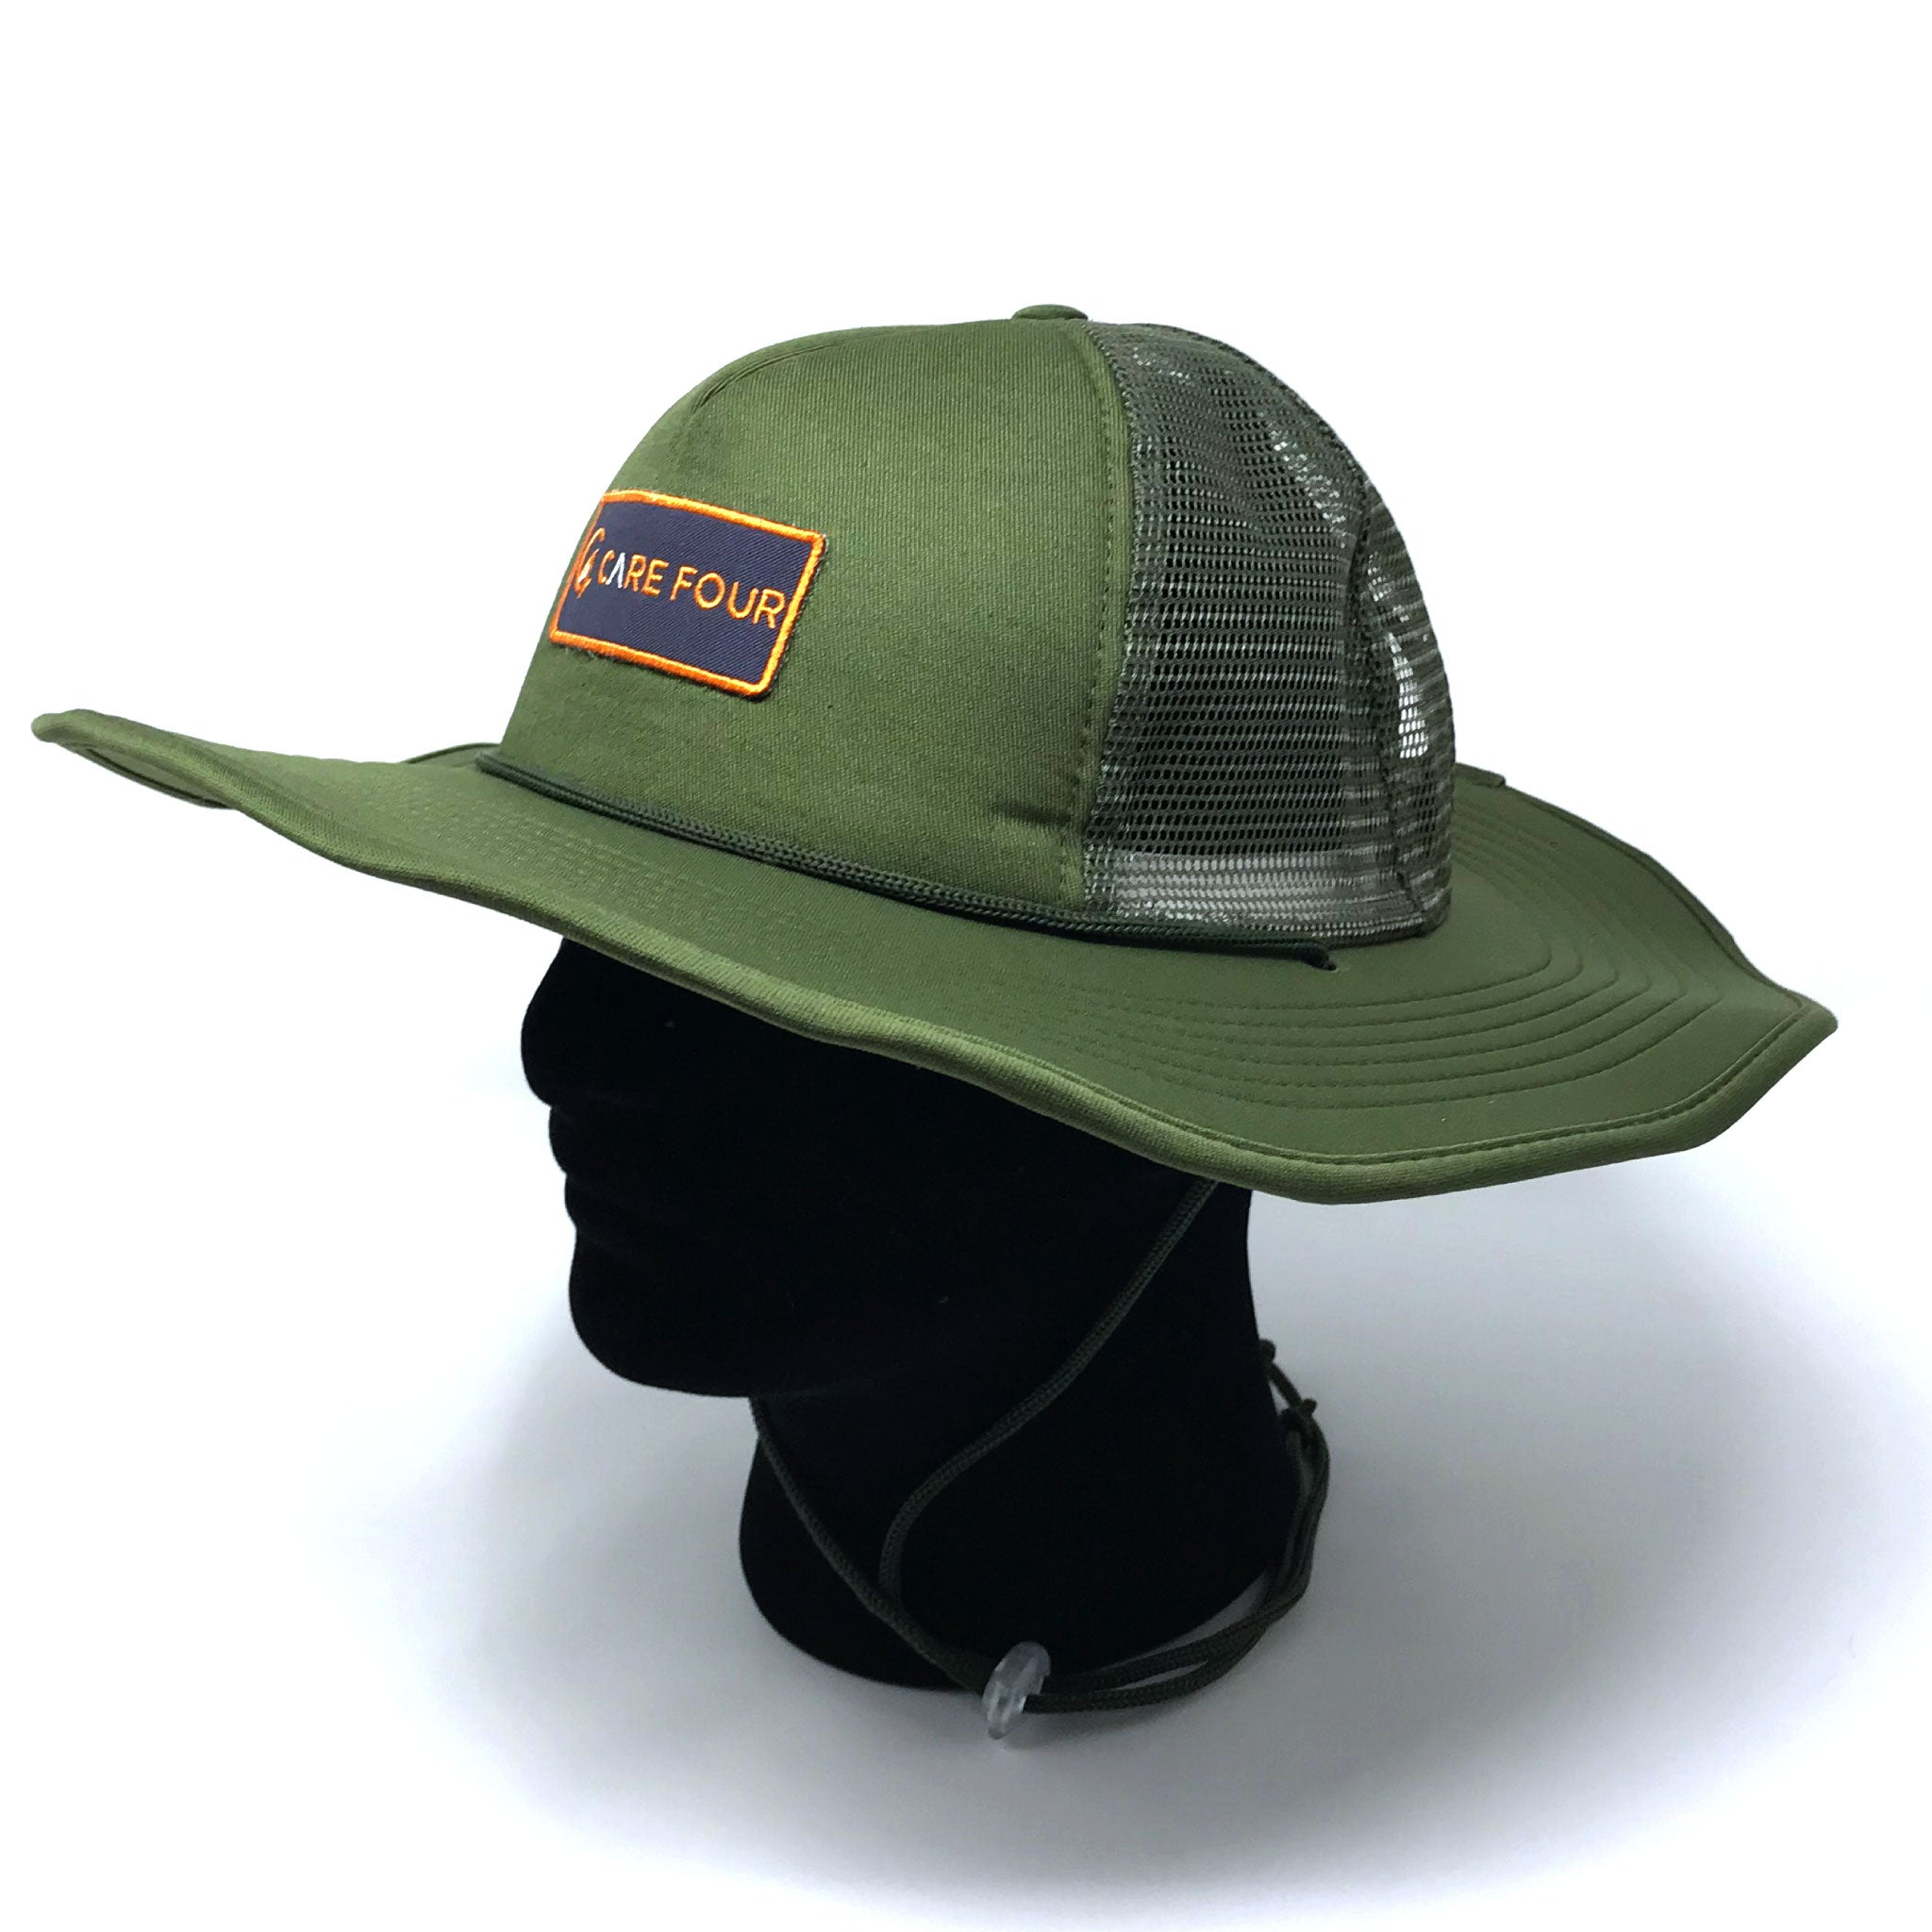 58b4ce216b4 Olive C4 RnR Snapback Bucket Hat - Care Four